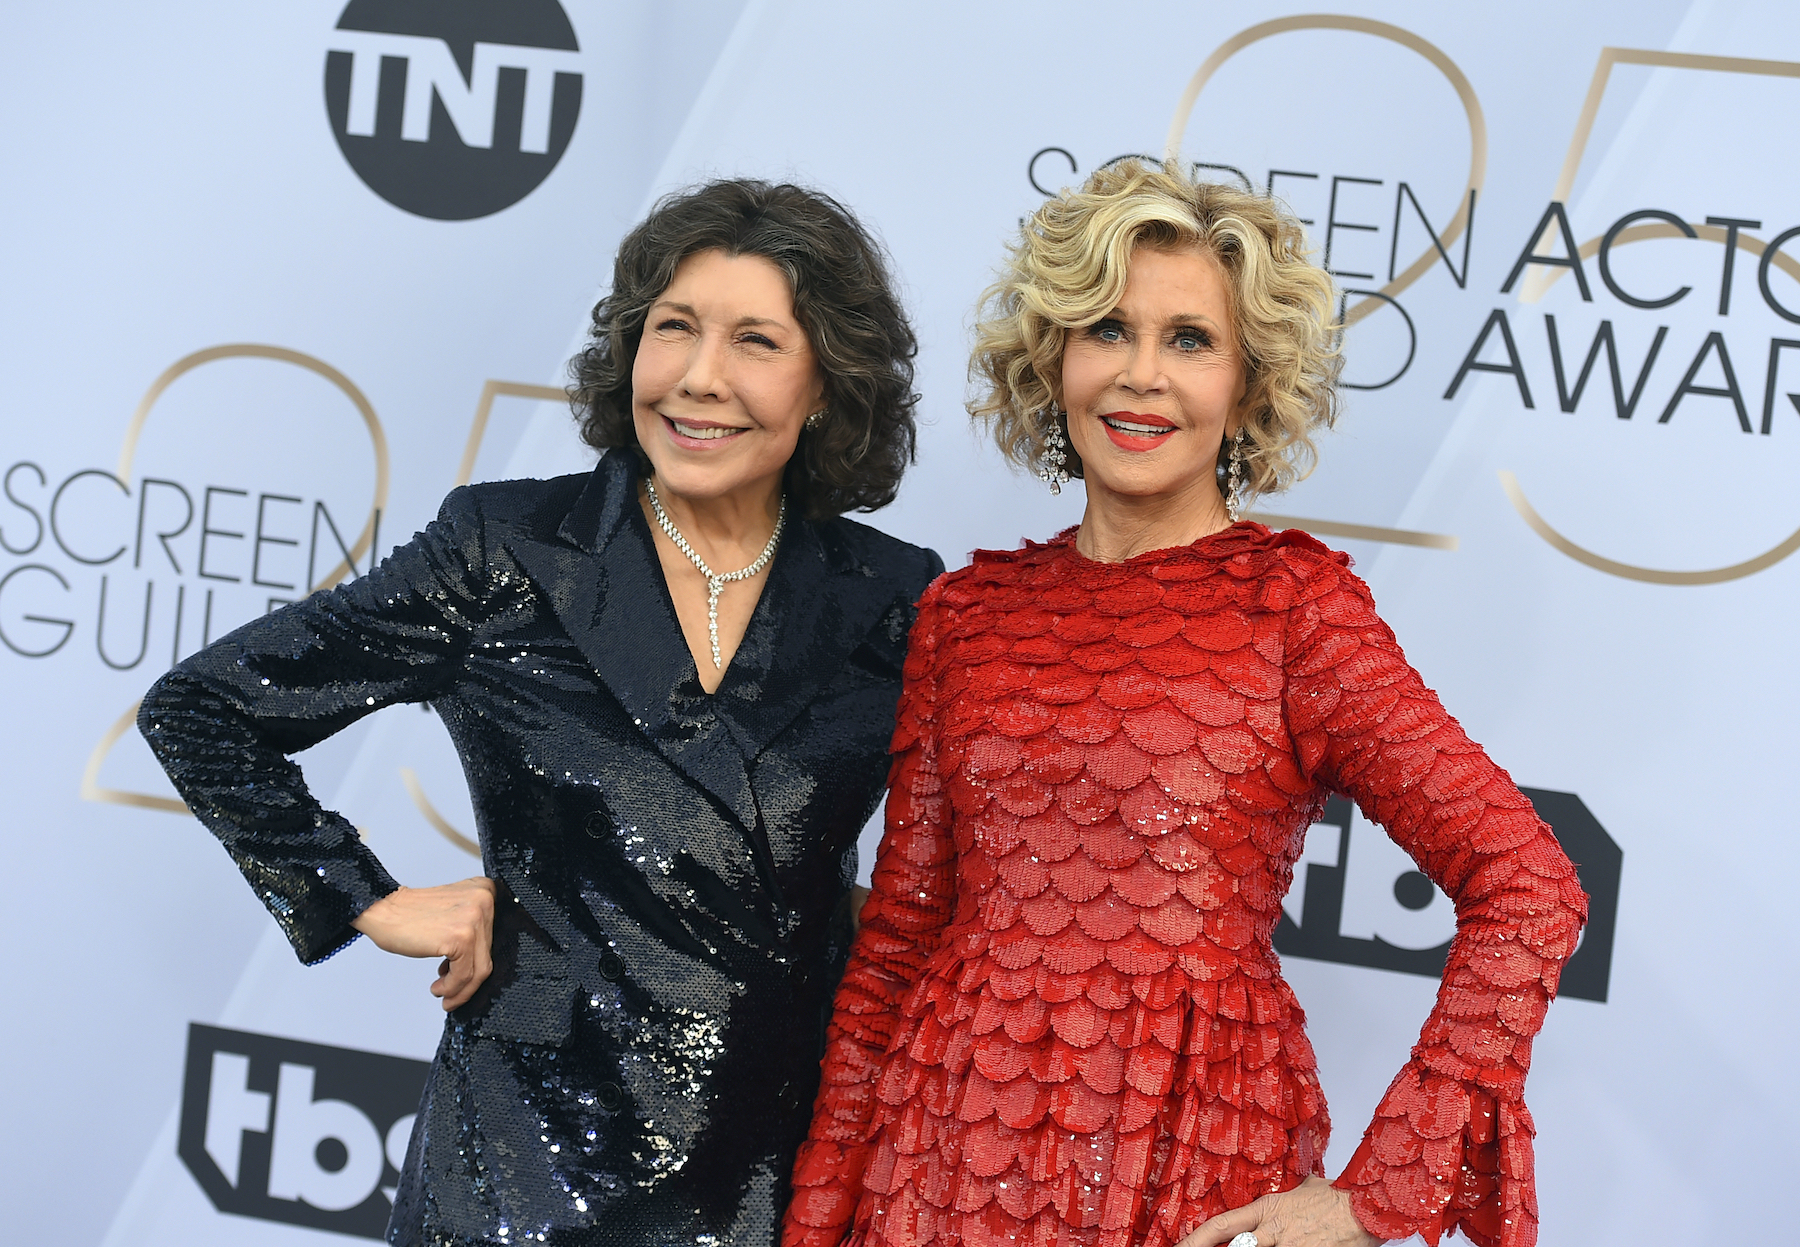 "<div class=""meta image-caption""><div class=""origin-logo origin-image ap""><span>AP</span></div><span class=""caption-text"">Lily Tomlin, left, and Jane Fonda arrive at the 25th annual Screen Actors Guild Awards at the Shrine Auditorium & Expo Hall on Sunday, Jan. 27, 2019, in Los Angeles. (Jordan Strauss/Invision/AP)</span></div>"